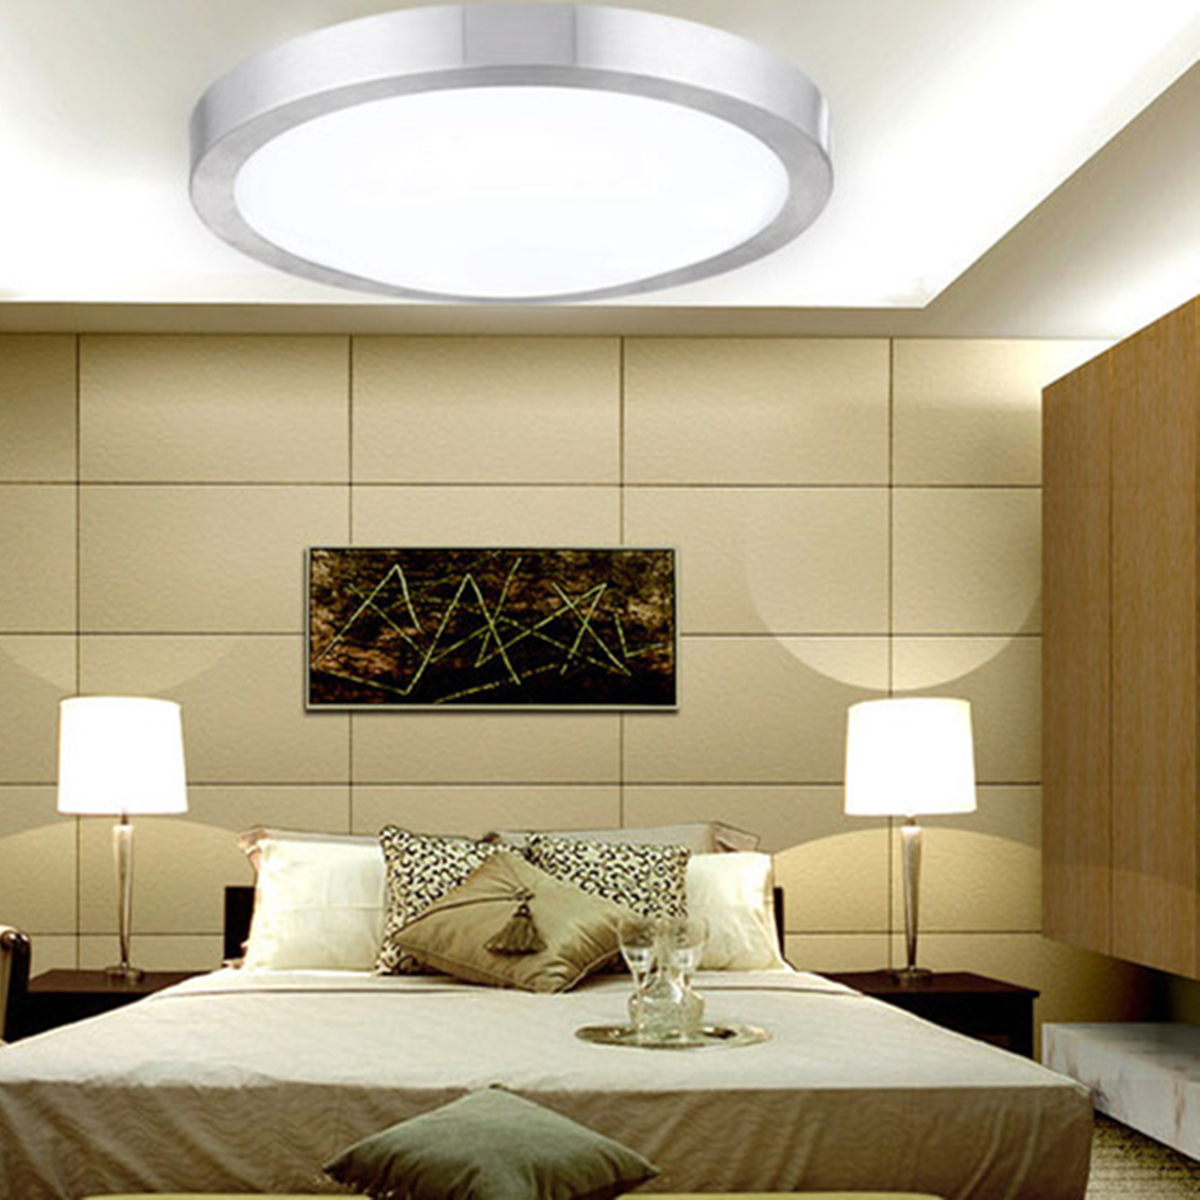 Ceiling Light Fixtures Kitchen: 5-36W LED Round Modern Ceiling Light Home Bedroom Kitchen